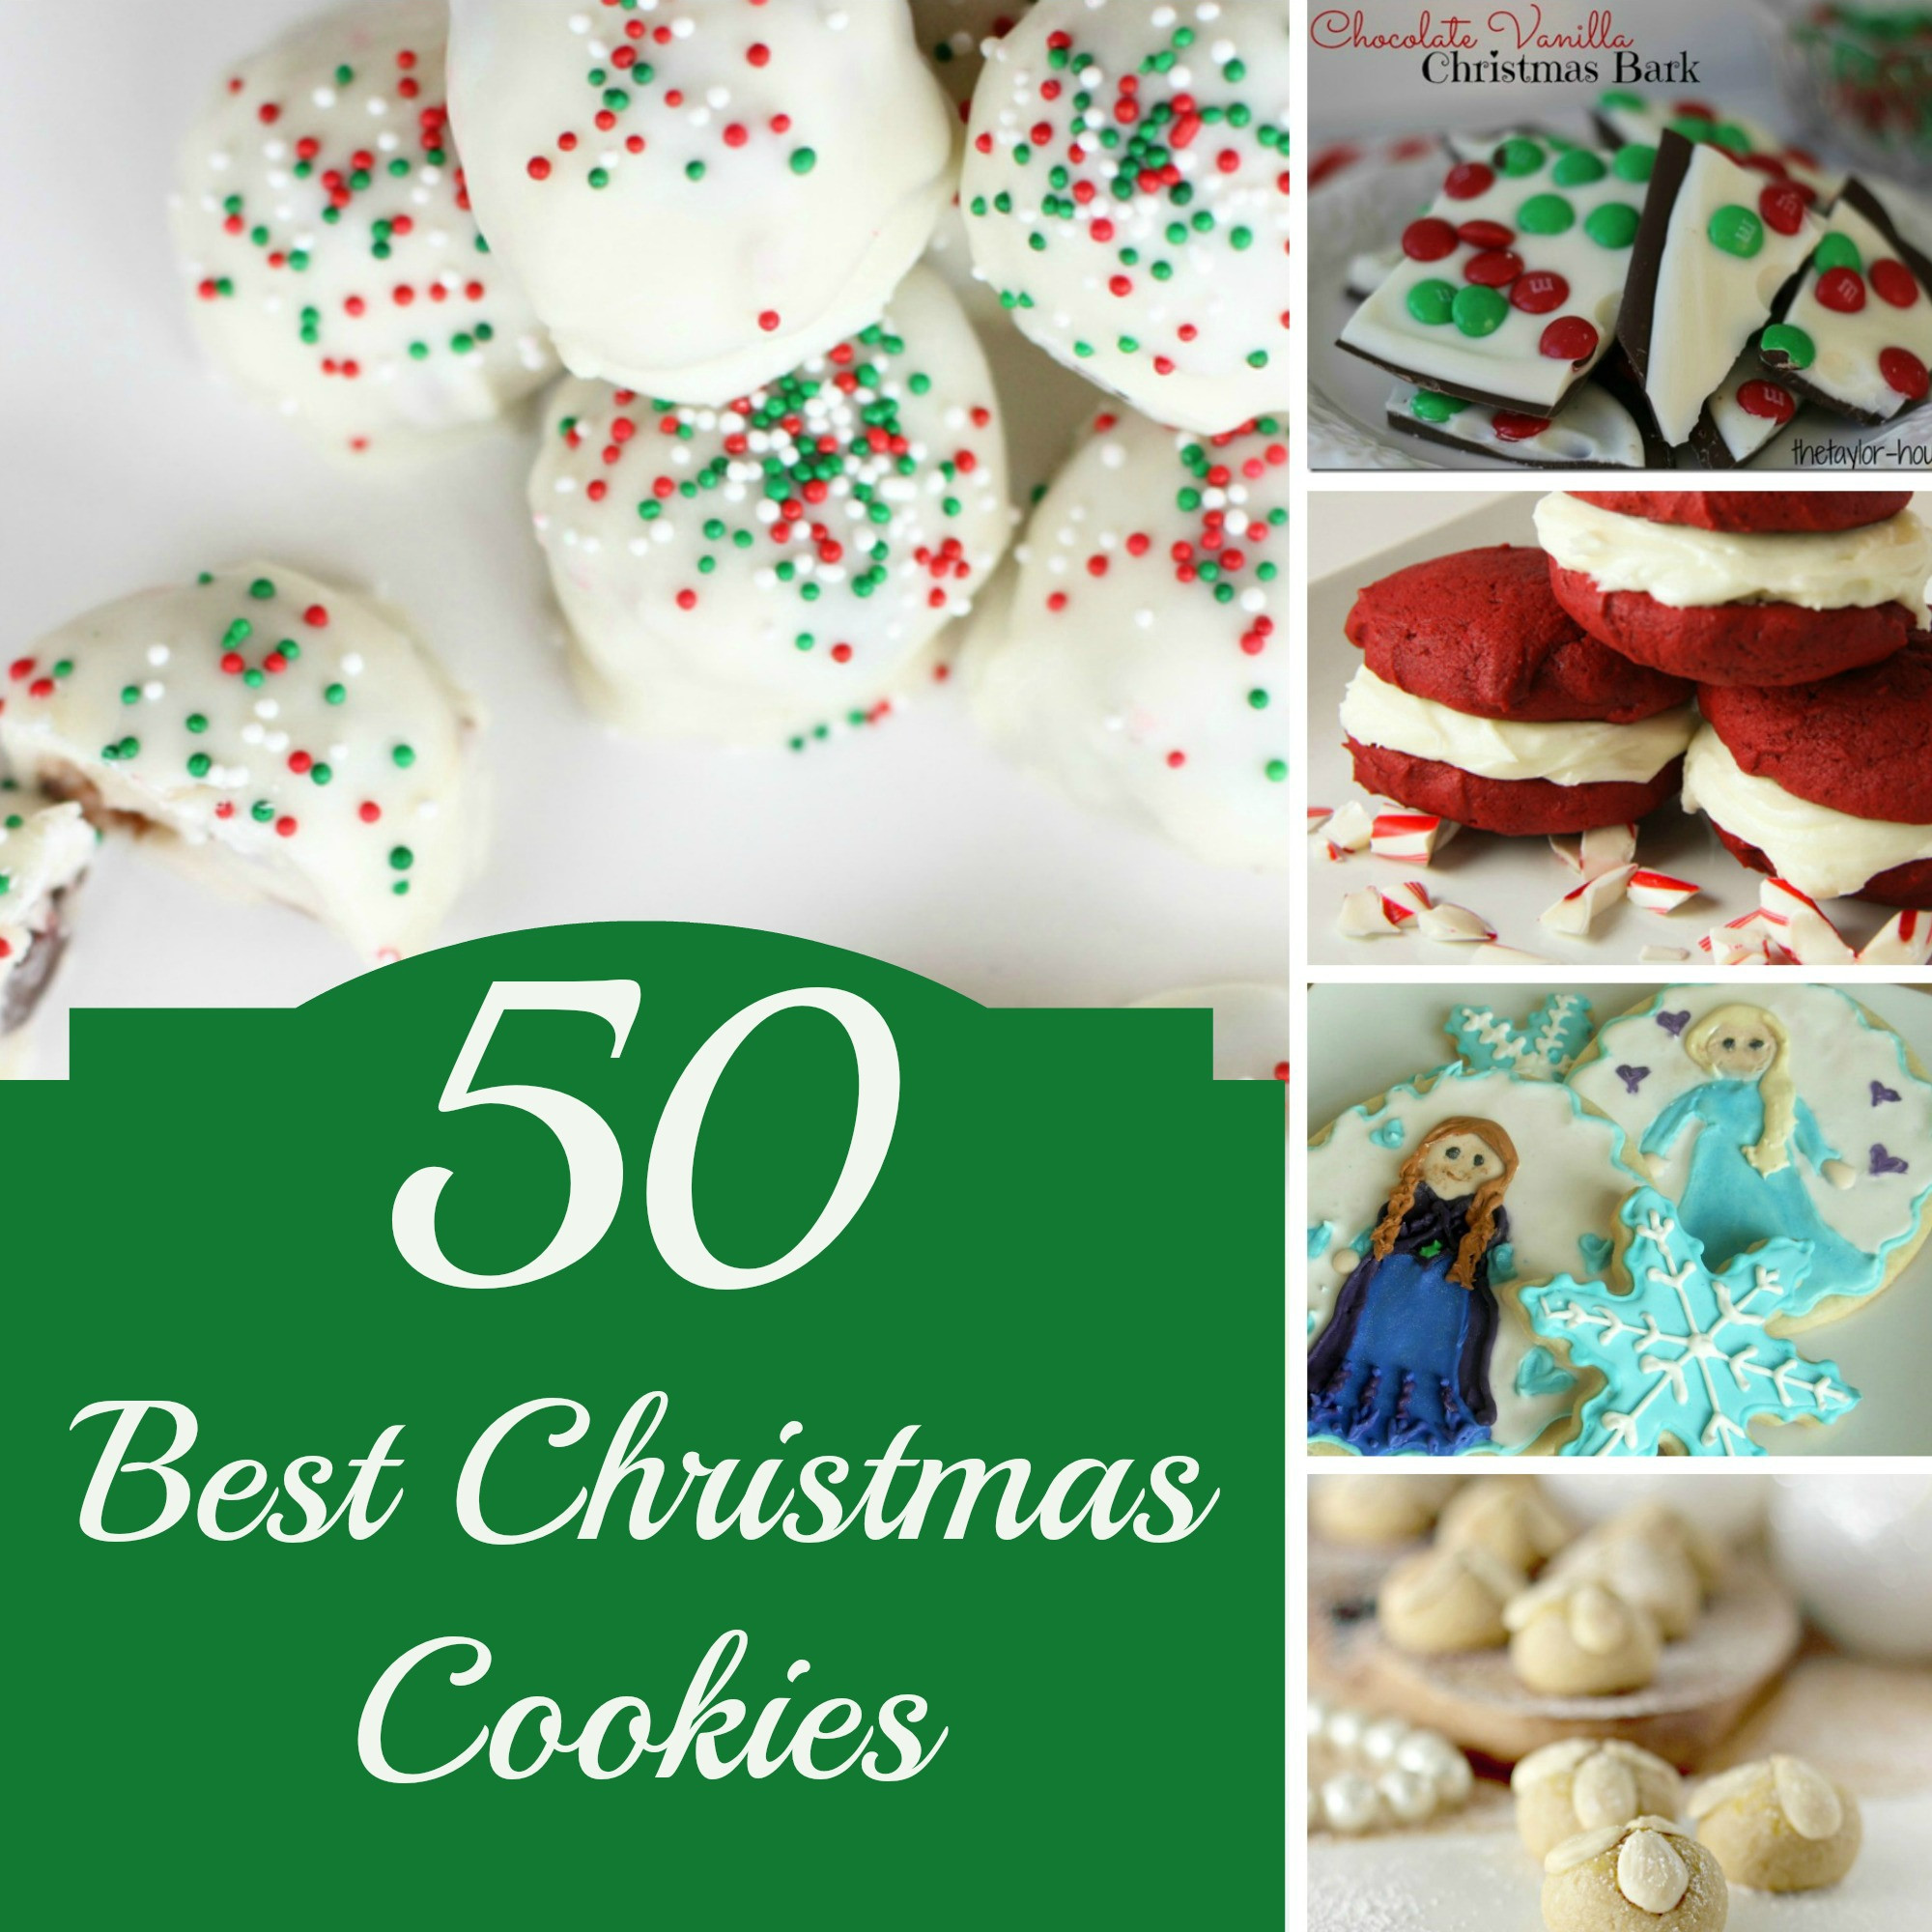 The Best Christmas Cookies  50 BEST Christmas Cookies to Make this Year